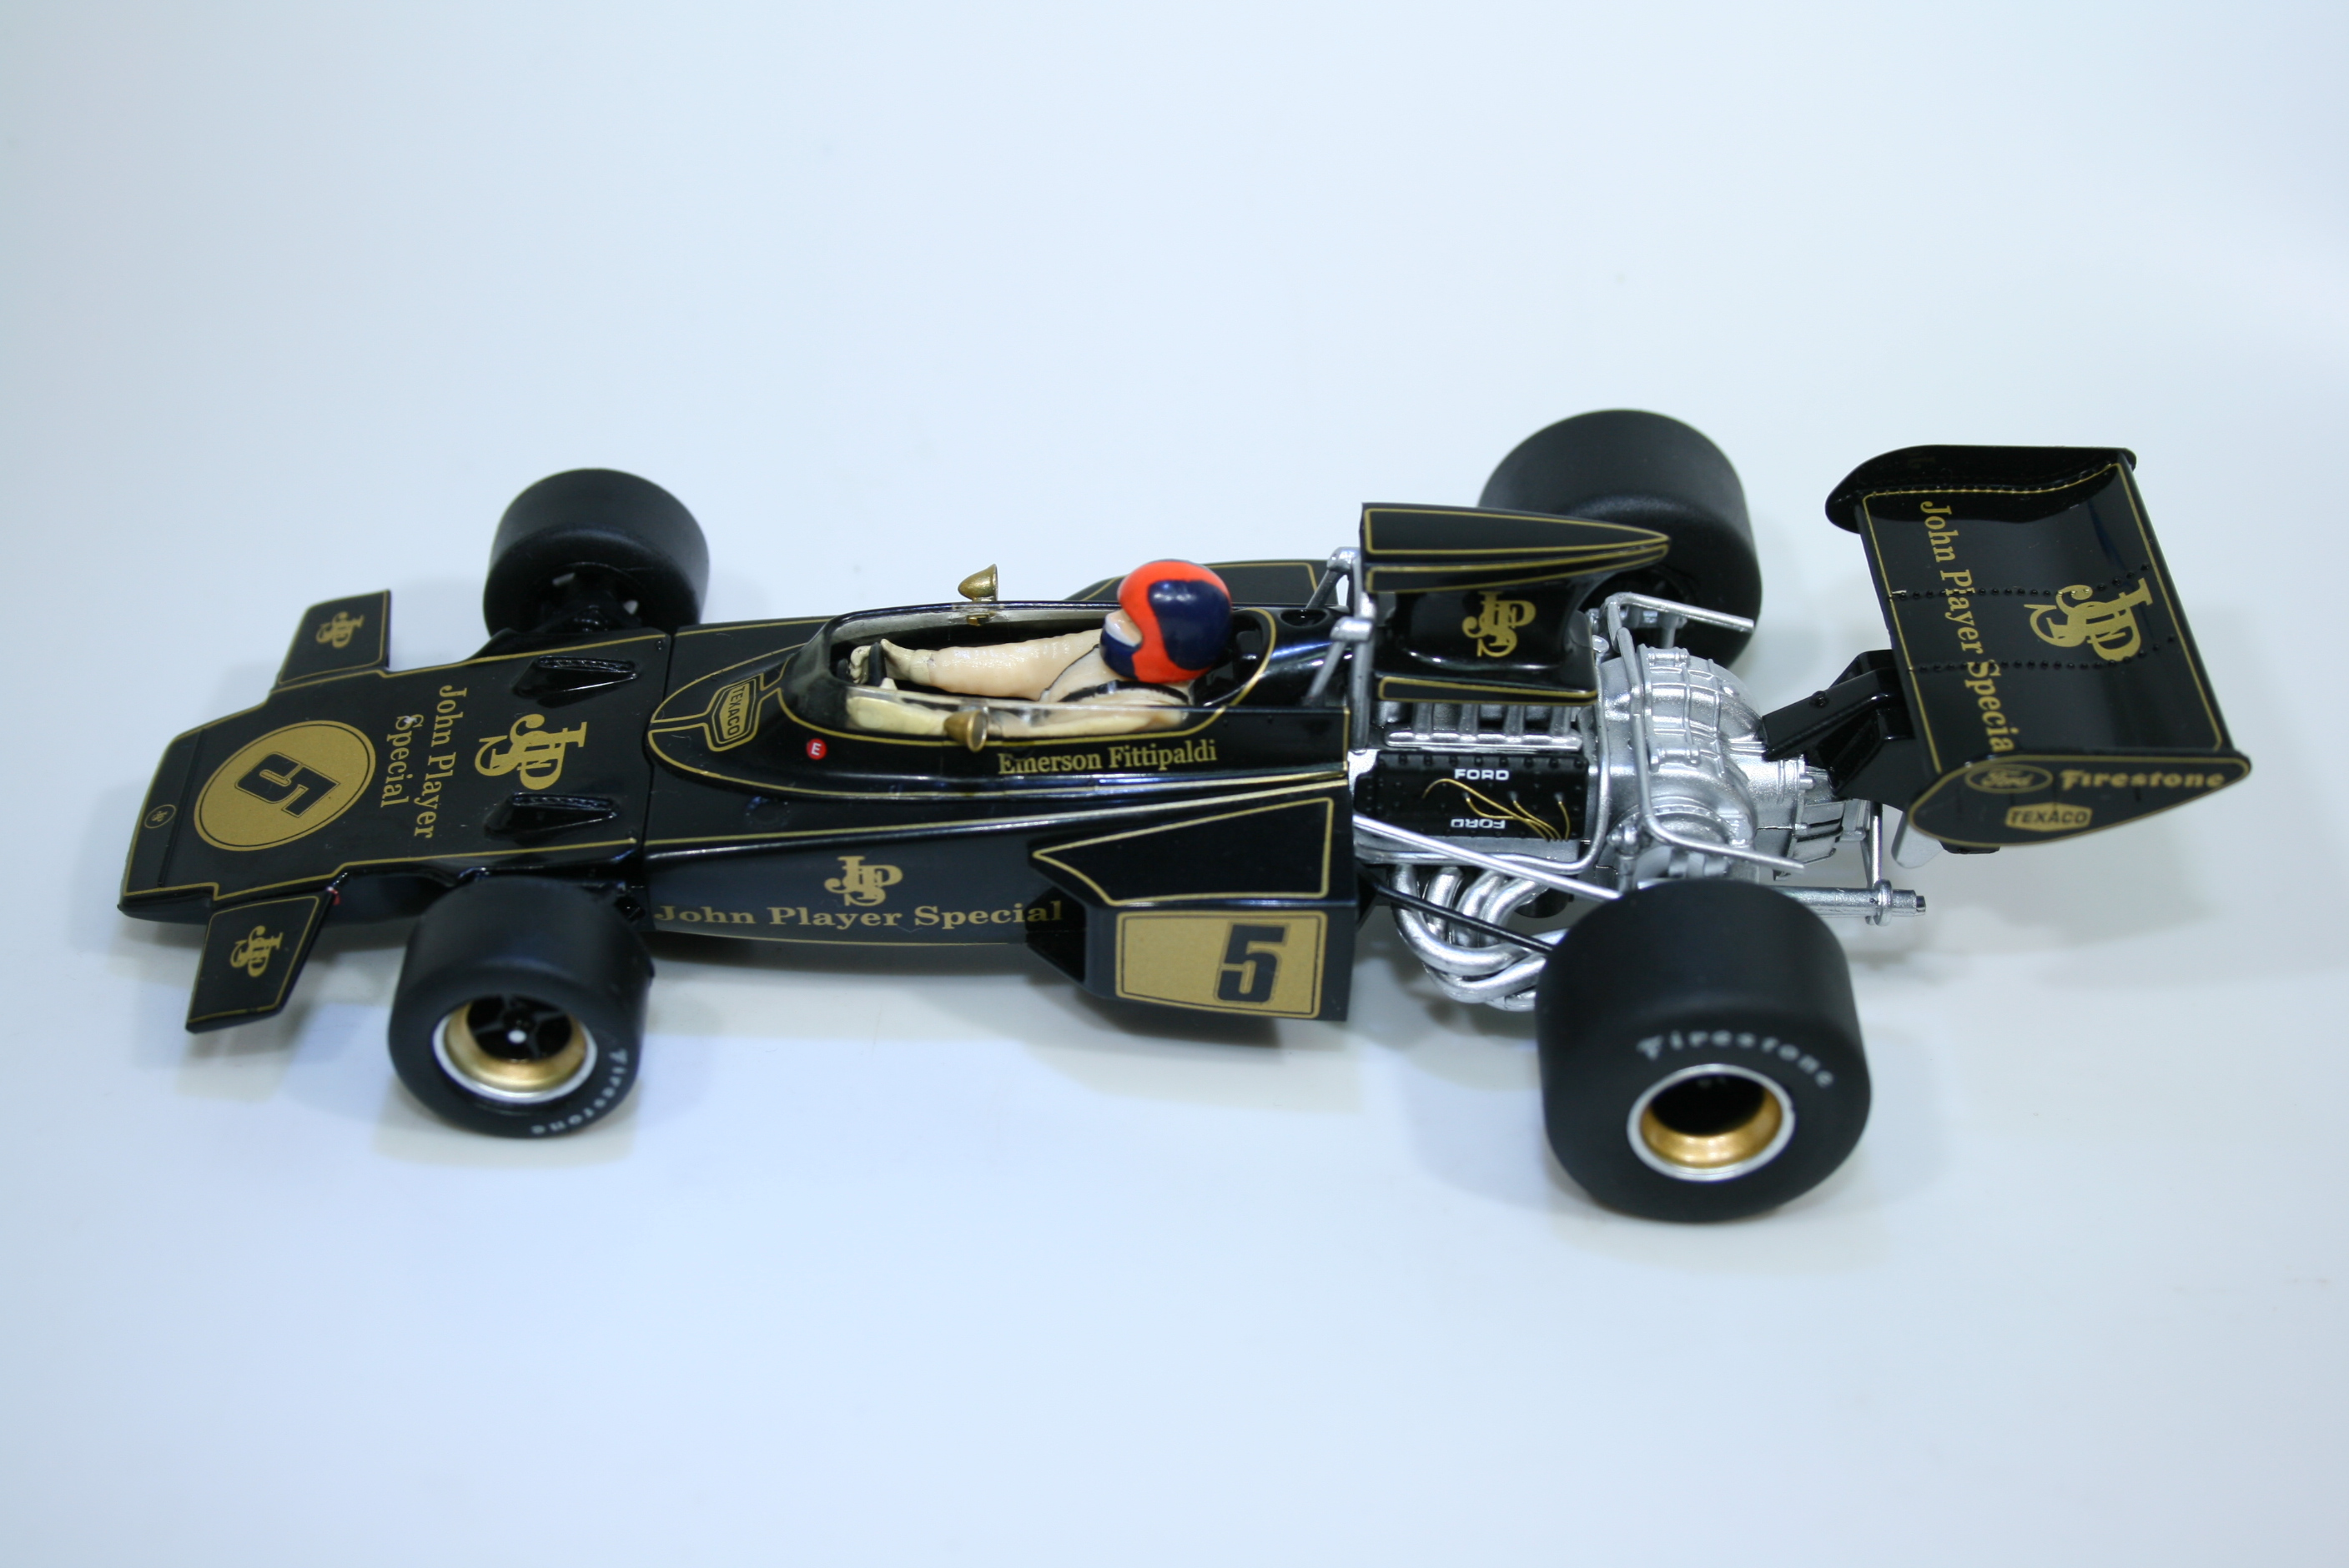 1603 Lotus 72 1972 E Fittipaldi Scalextric C4184A 2021 Boxed